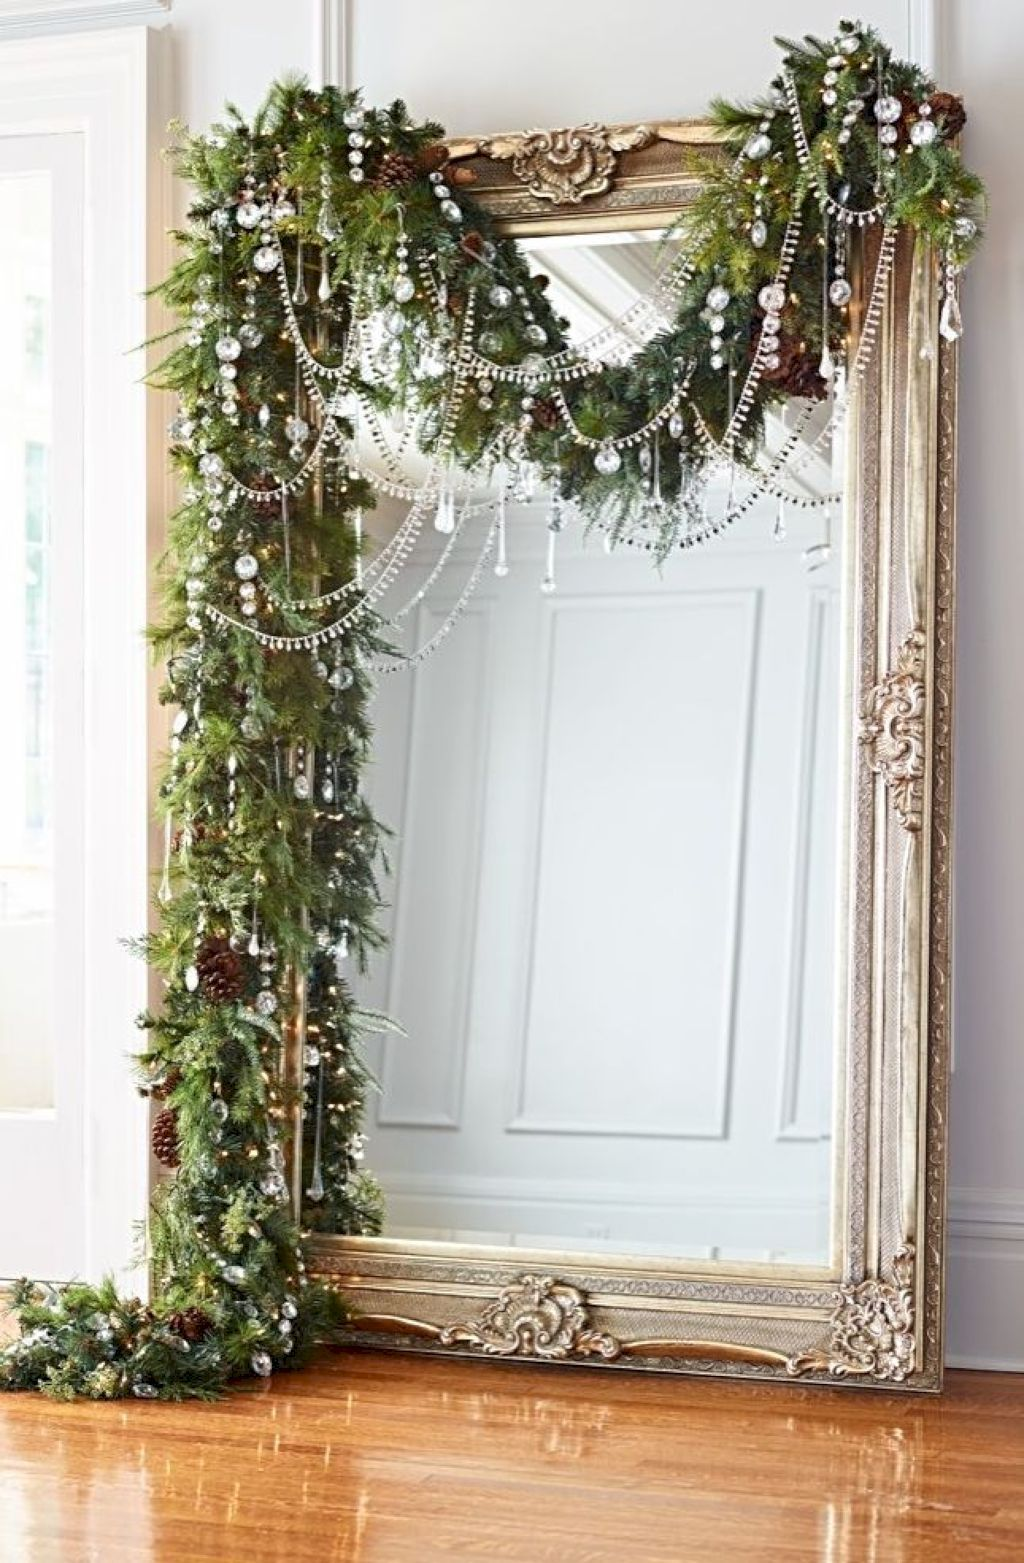 70 Beautiful White Christmas Decor Ideas On A Budget #christmasdecor